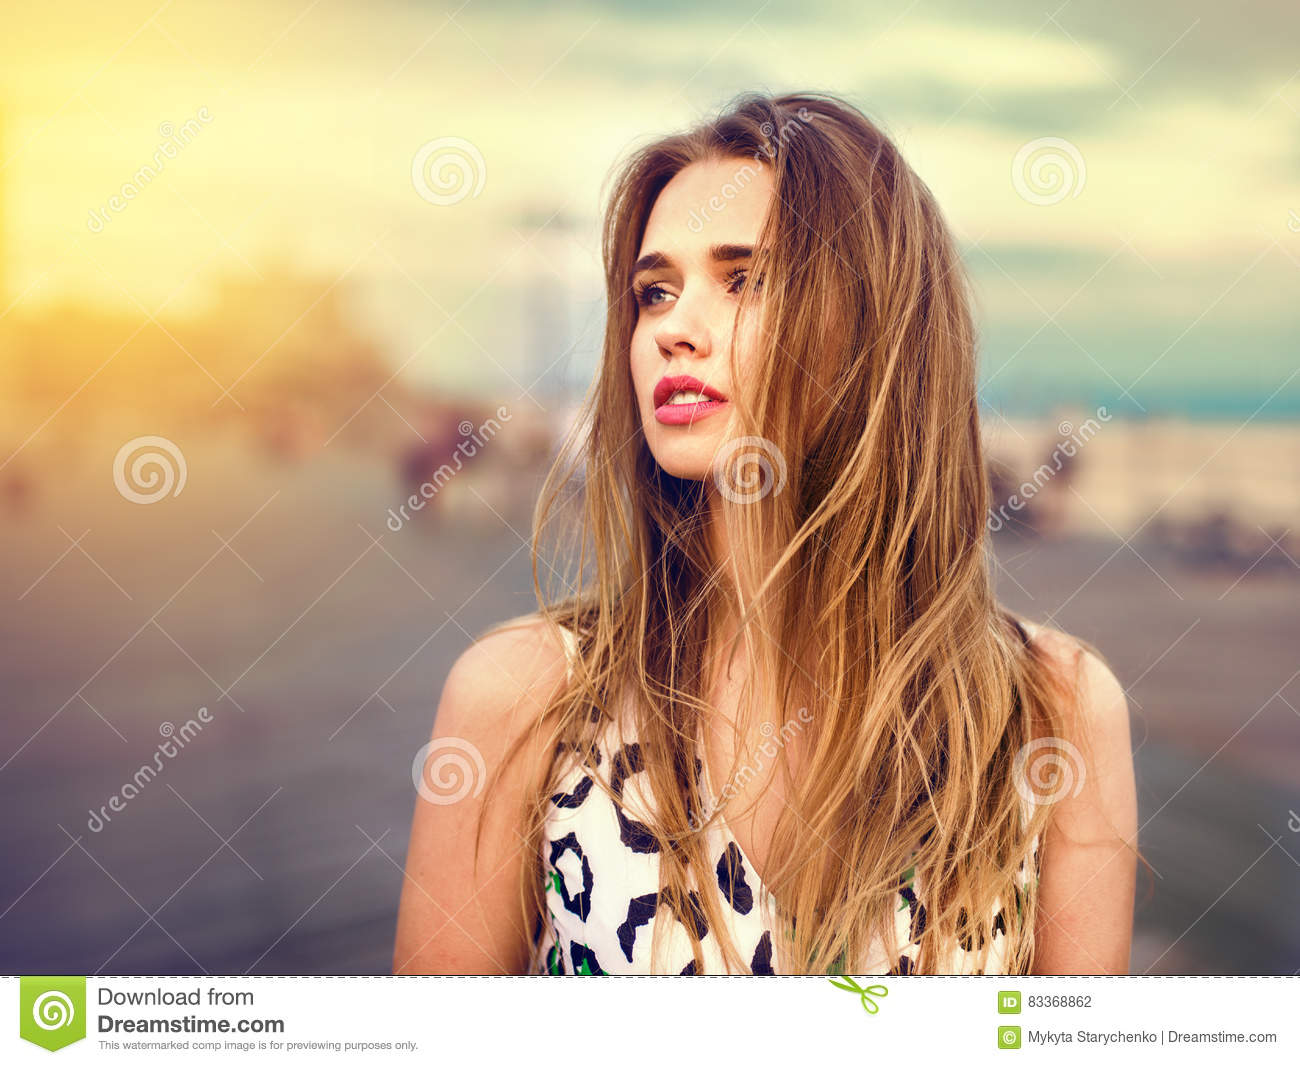 Beautiful girl enjoy the walk on the beach boardwalk at sunset time. Woman looking to the side outdoors